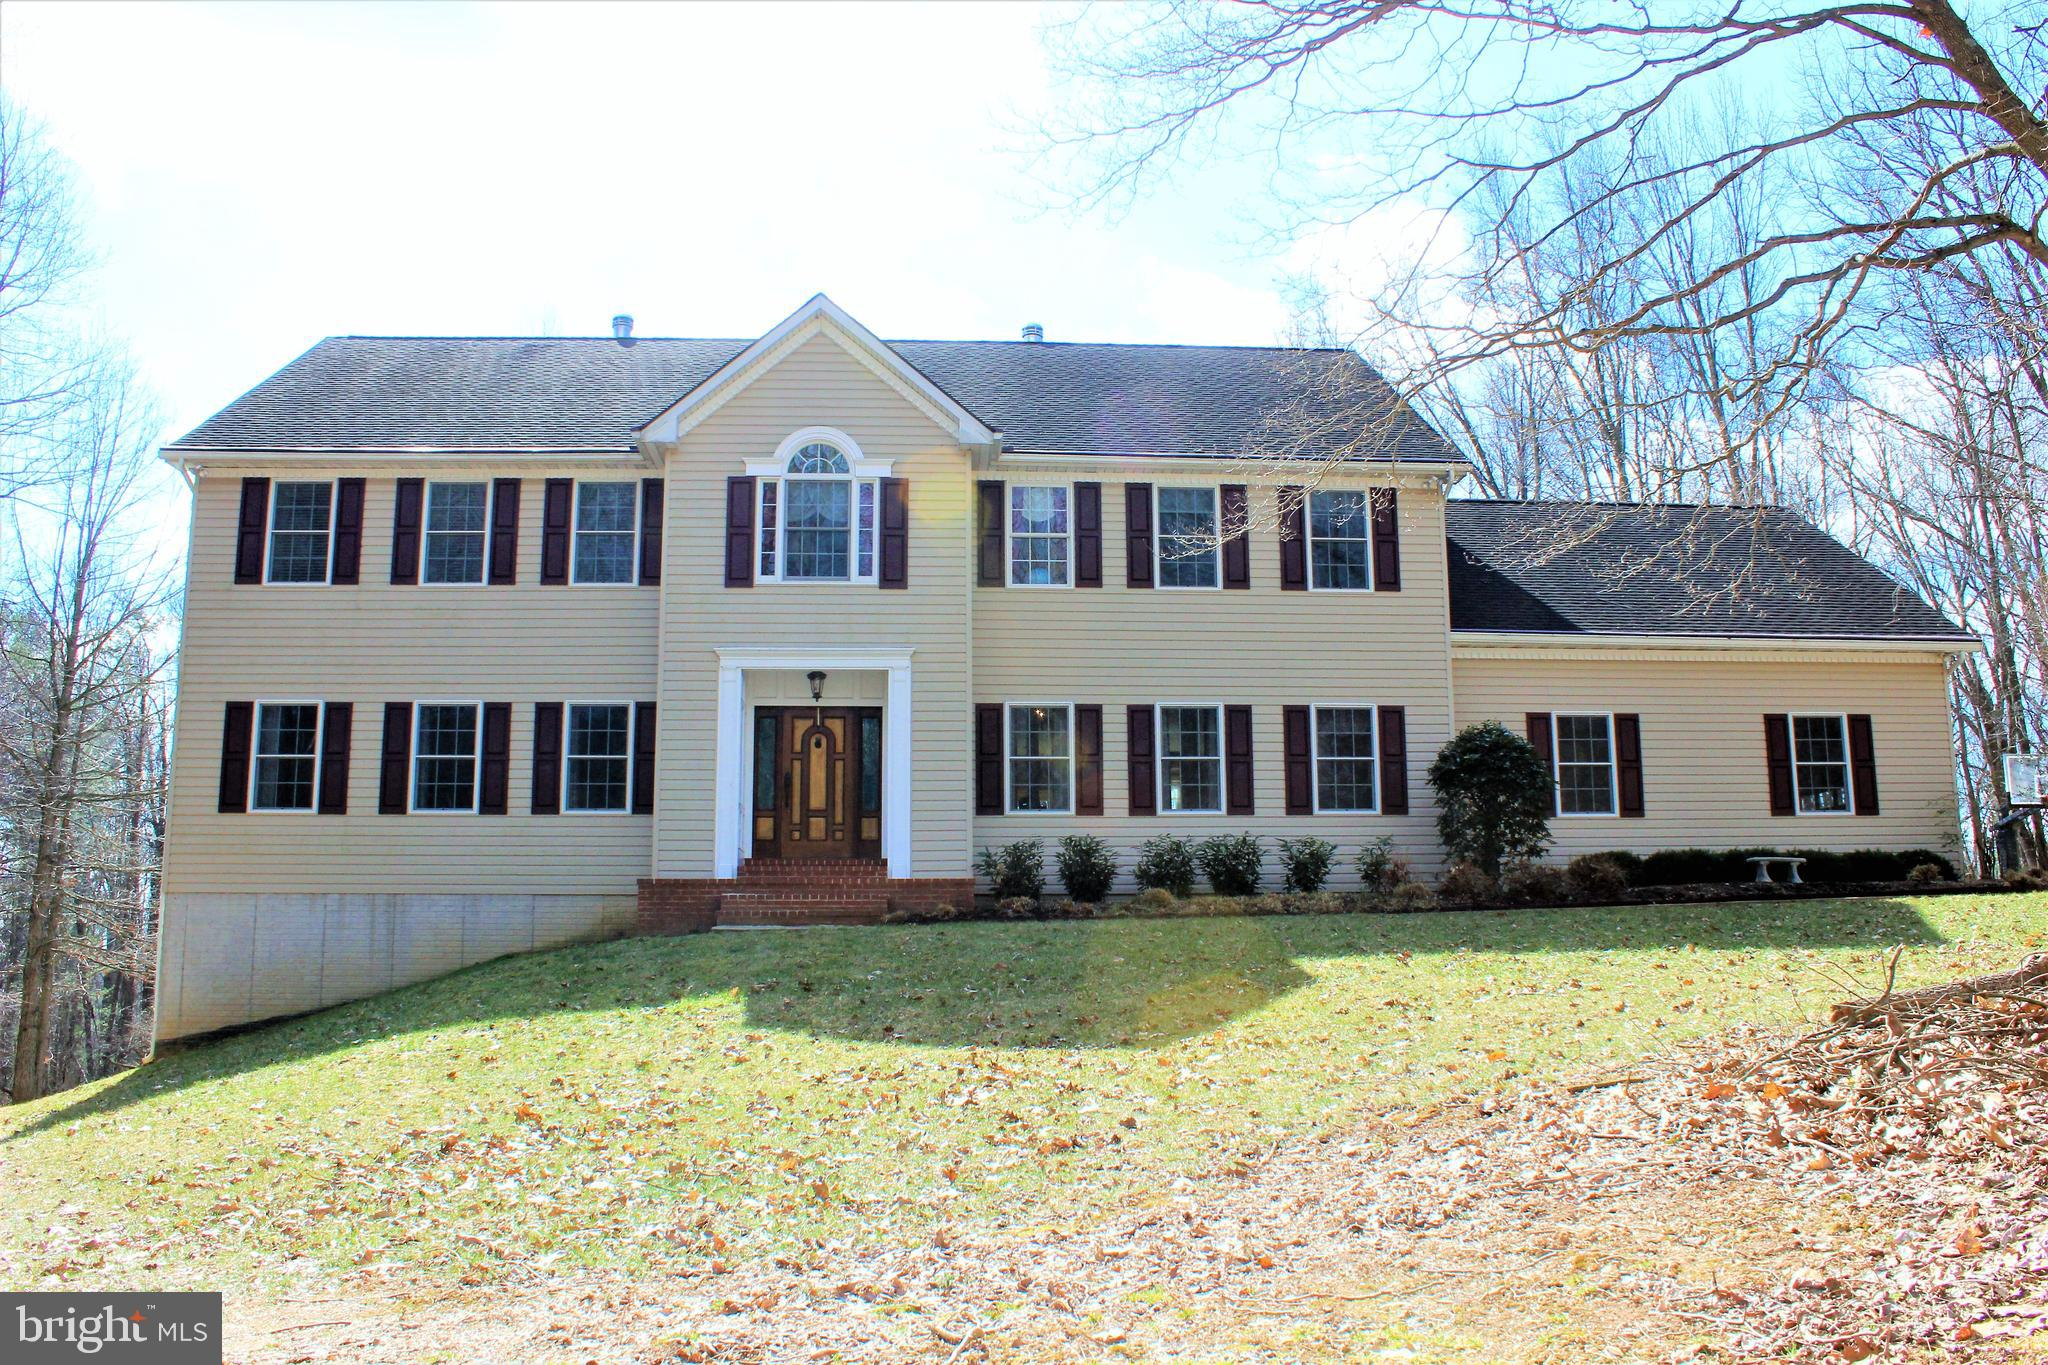 1345 BREHM ROAD, WESTMINSTER, MD 21157